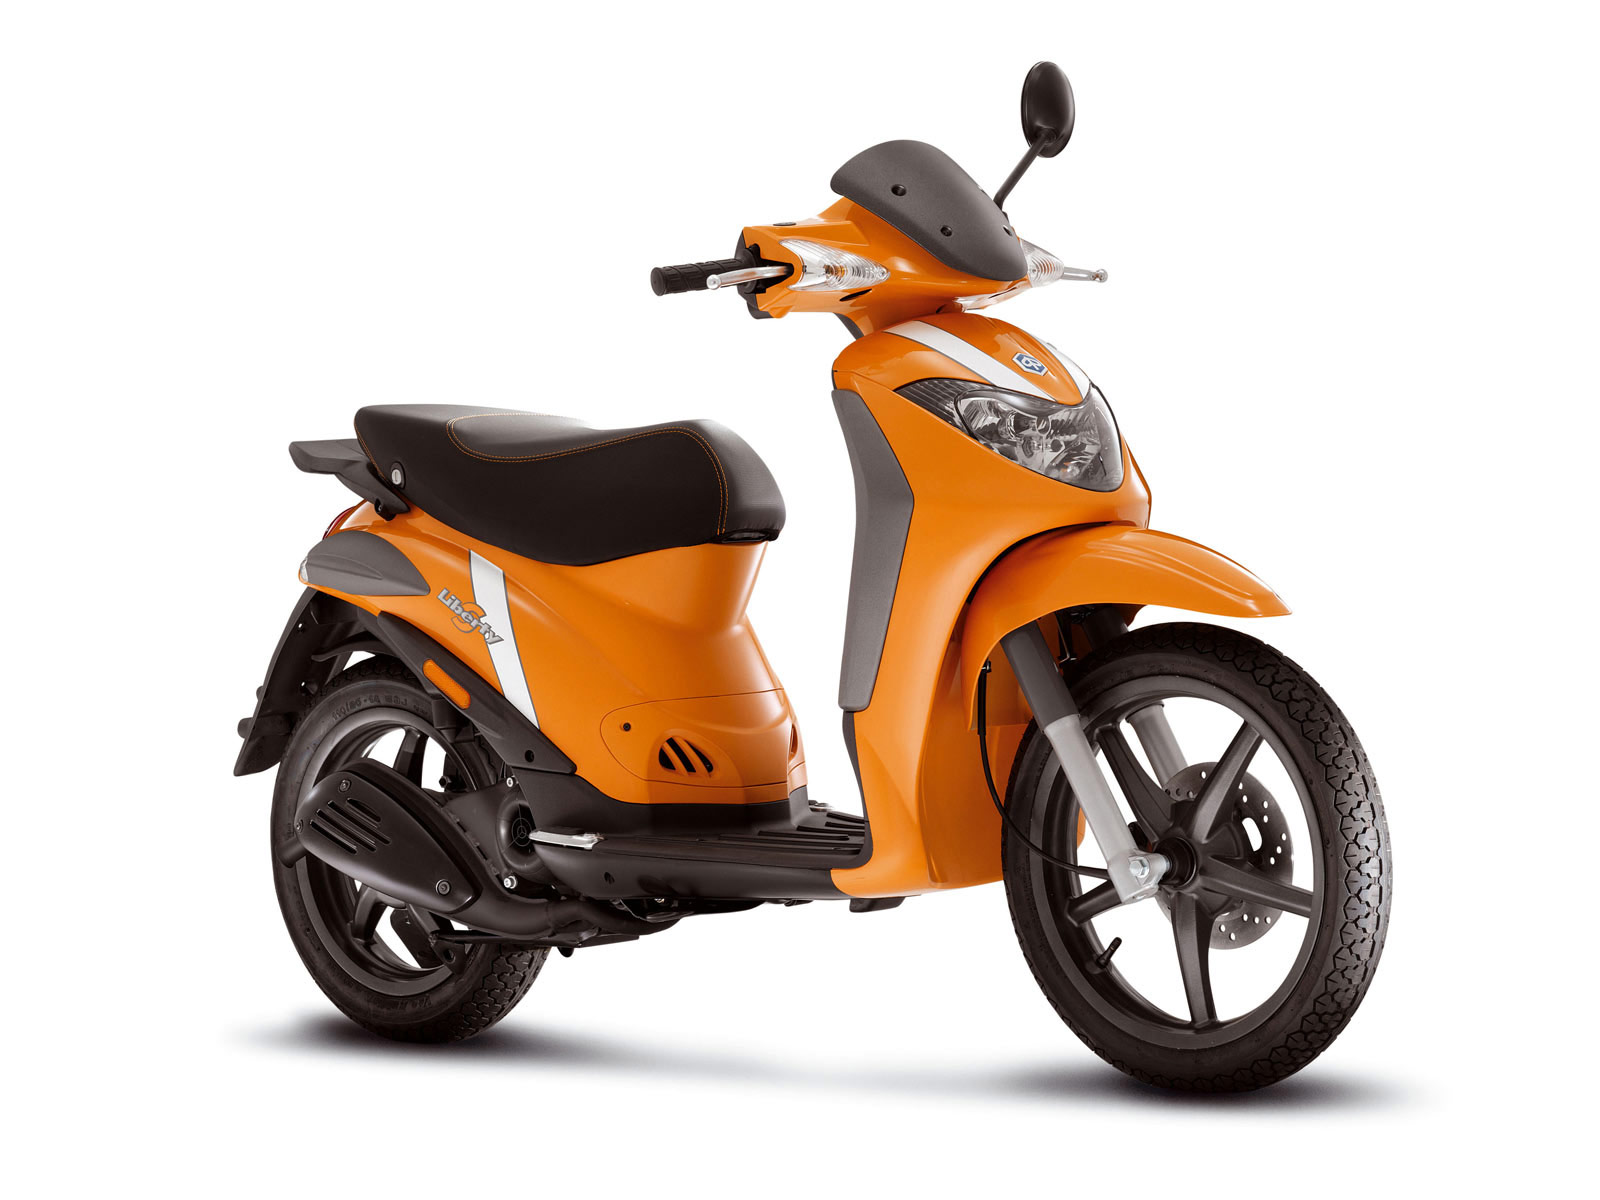 2008 piaggio liberty s scooter pictures. Black Bedroom Furniture Sets. Home Design Ideas